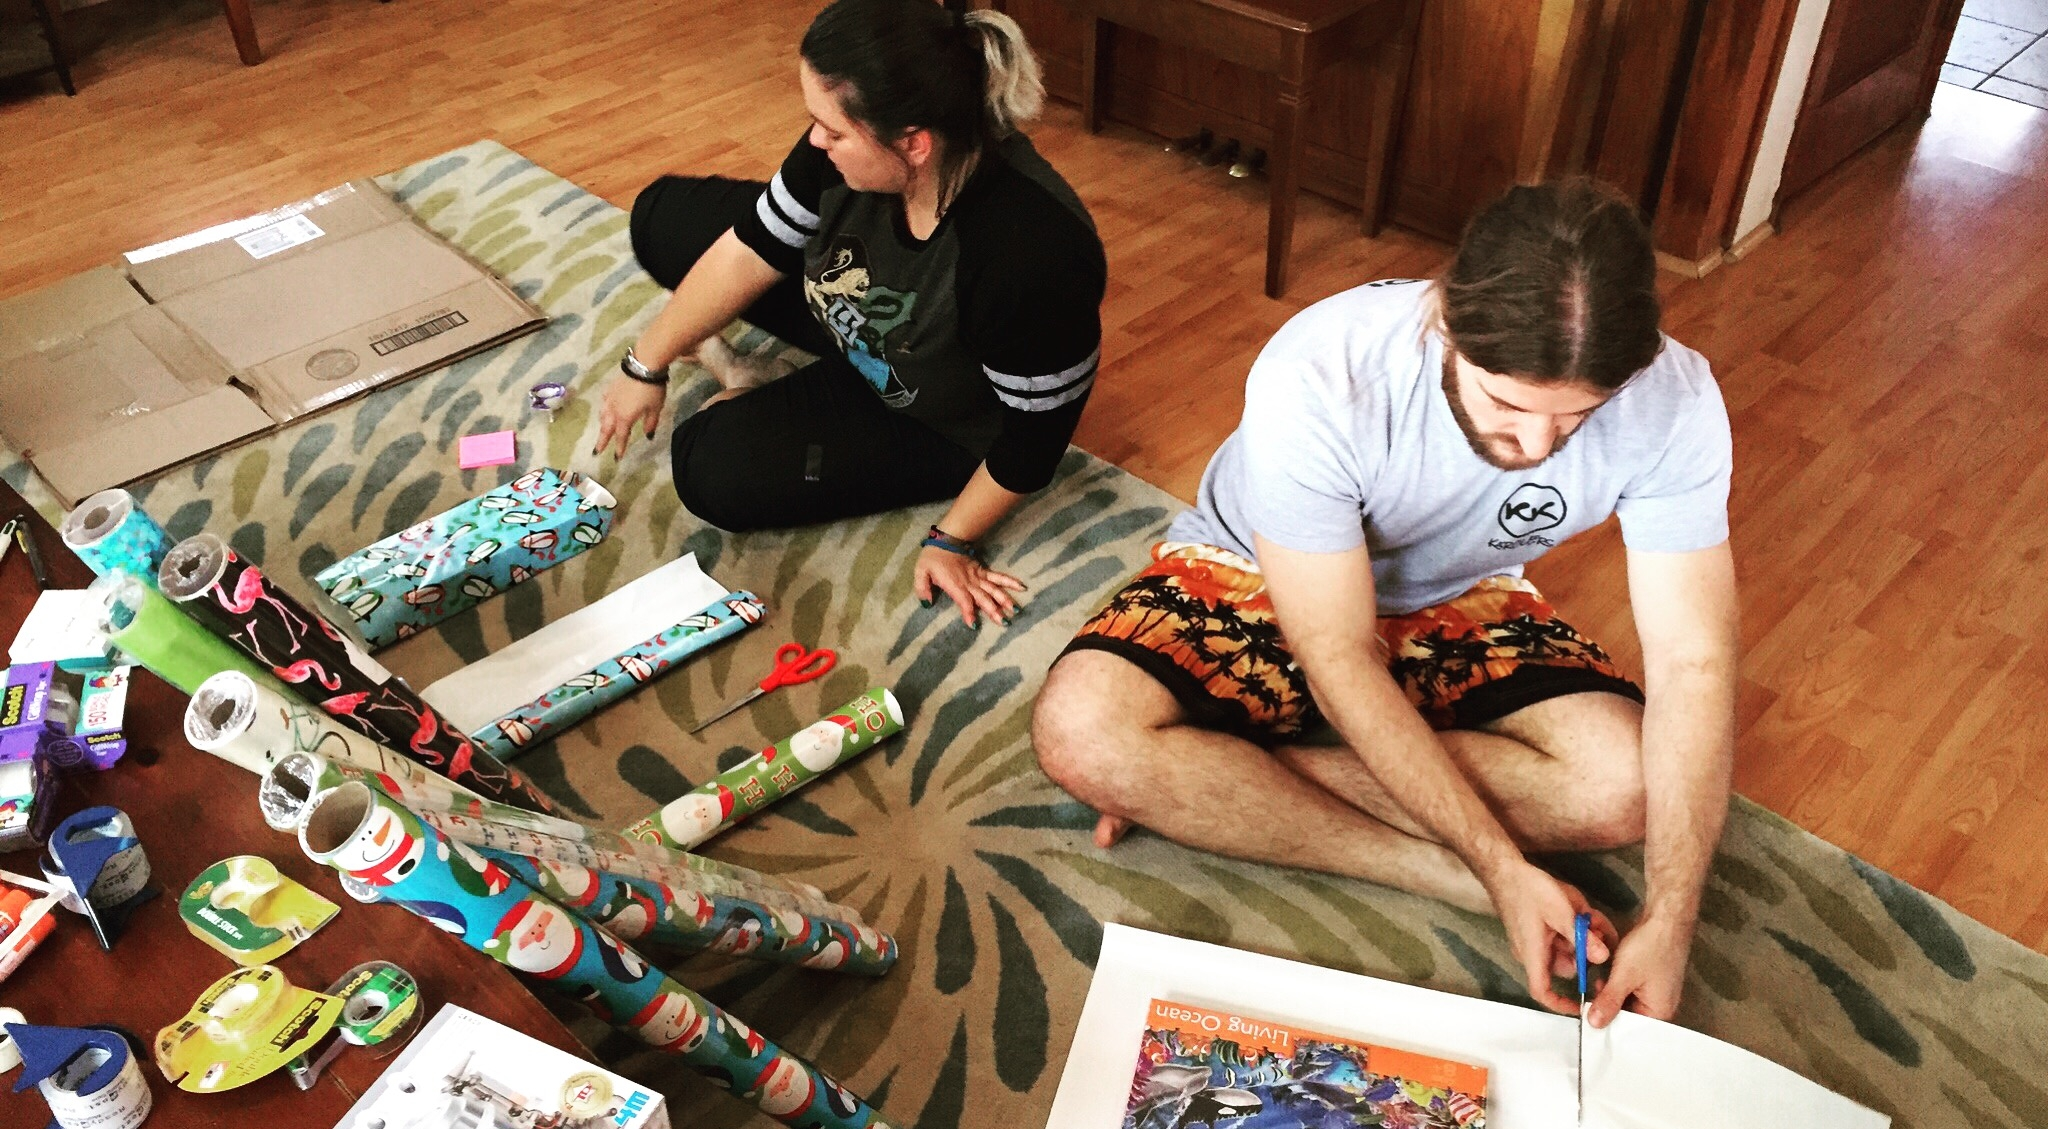 Carlyn and Karol's relationship with wrapping paper will never be the same again.